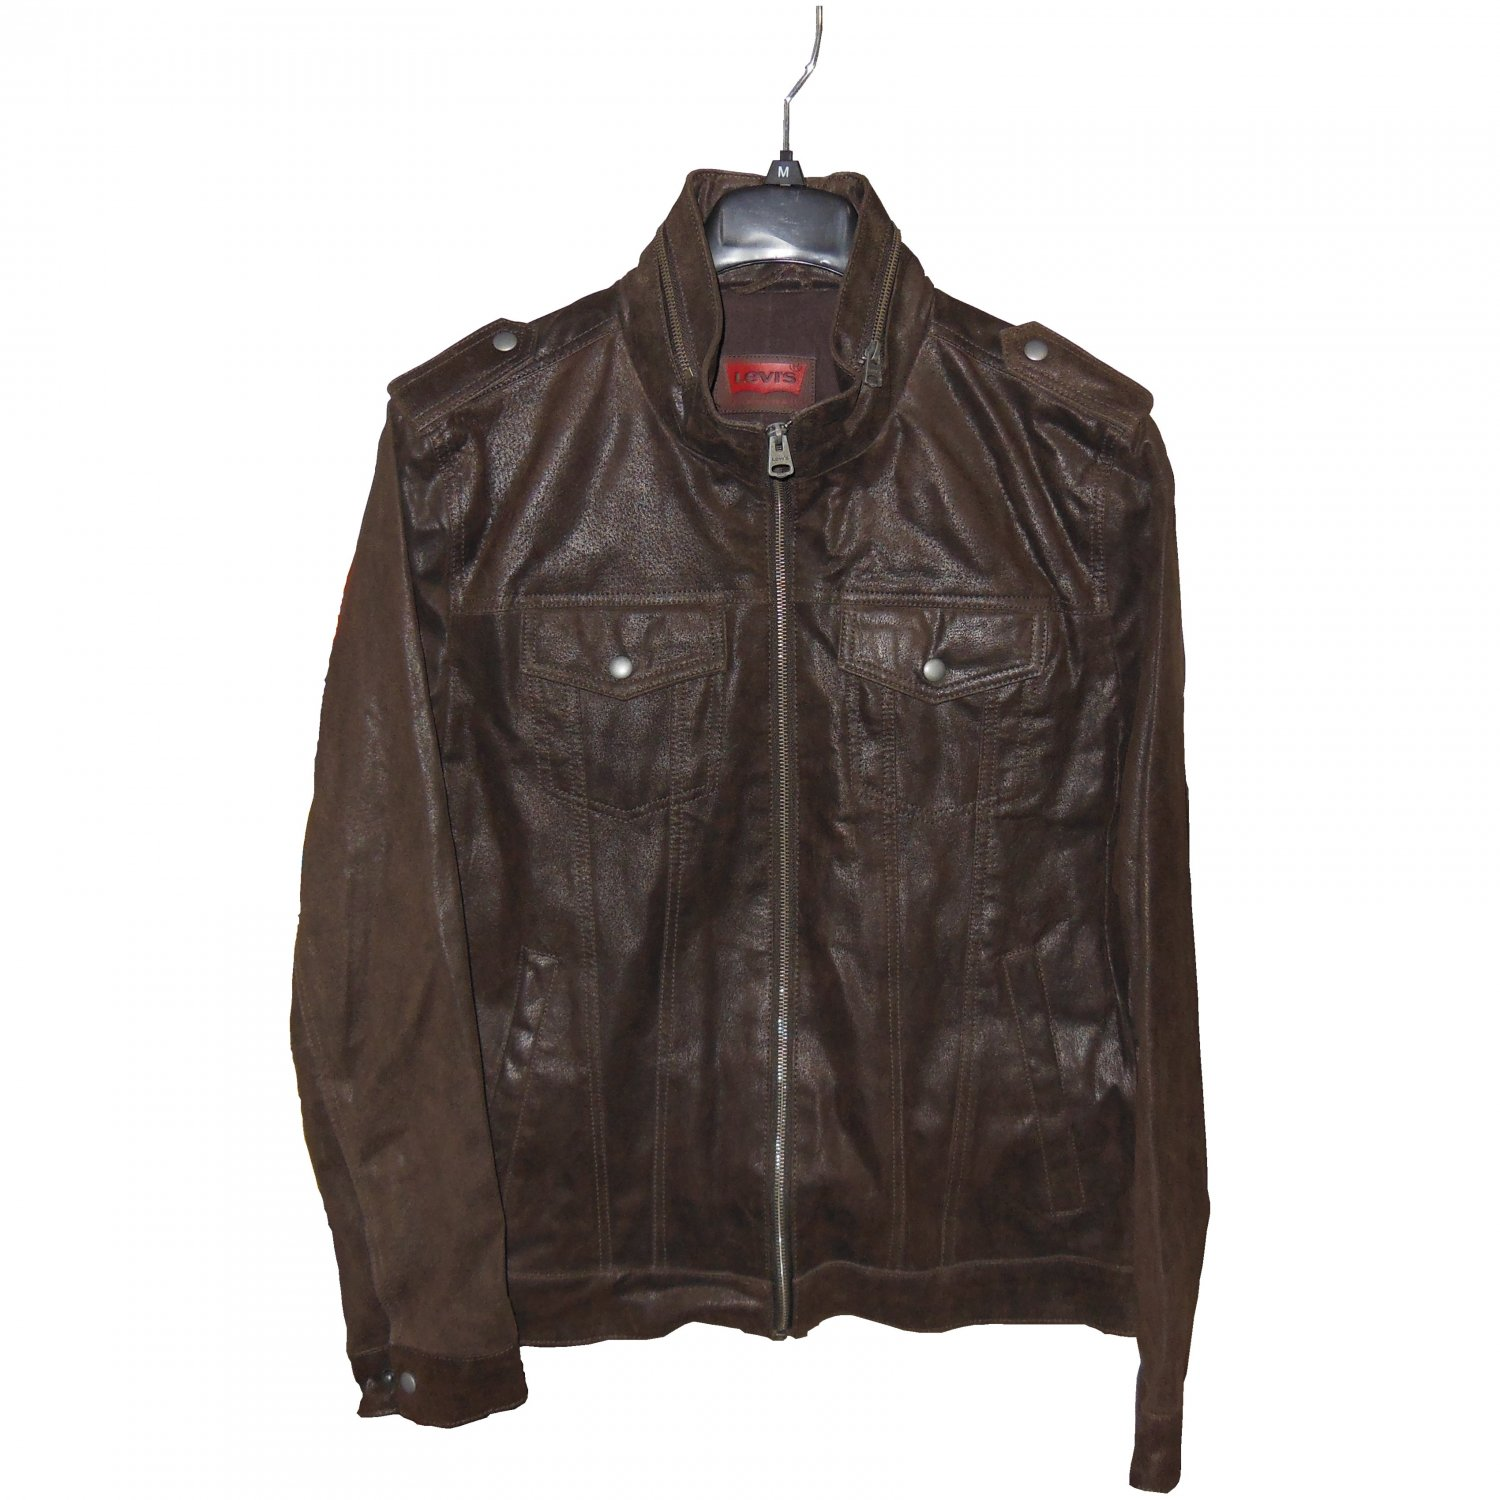 Levi's Zip Military Trucker 100% Leather Jacket Dark Brown LM3R6400, Extra Large